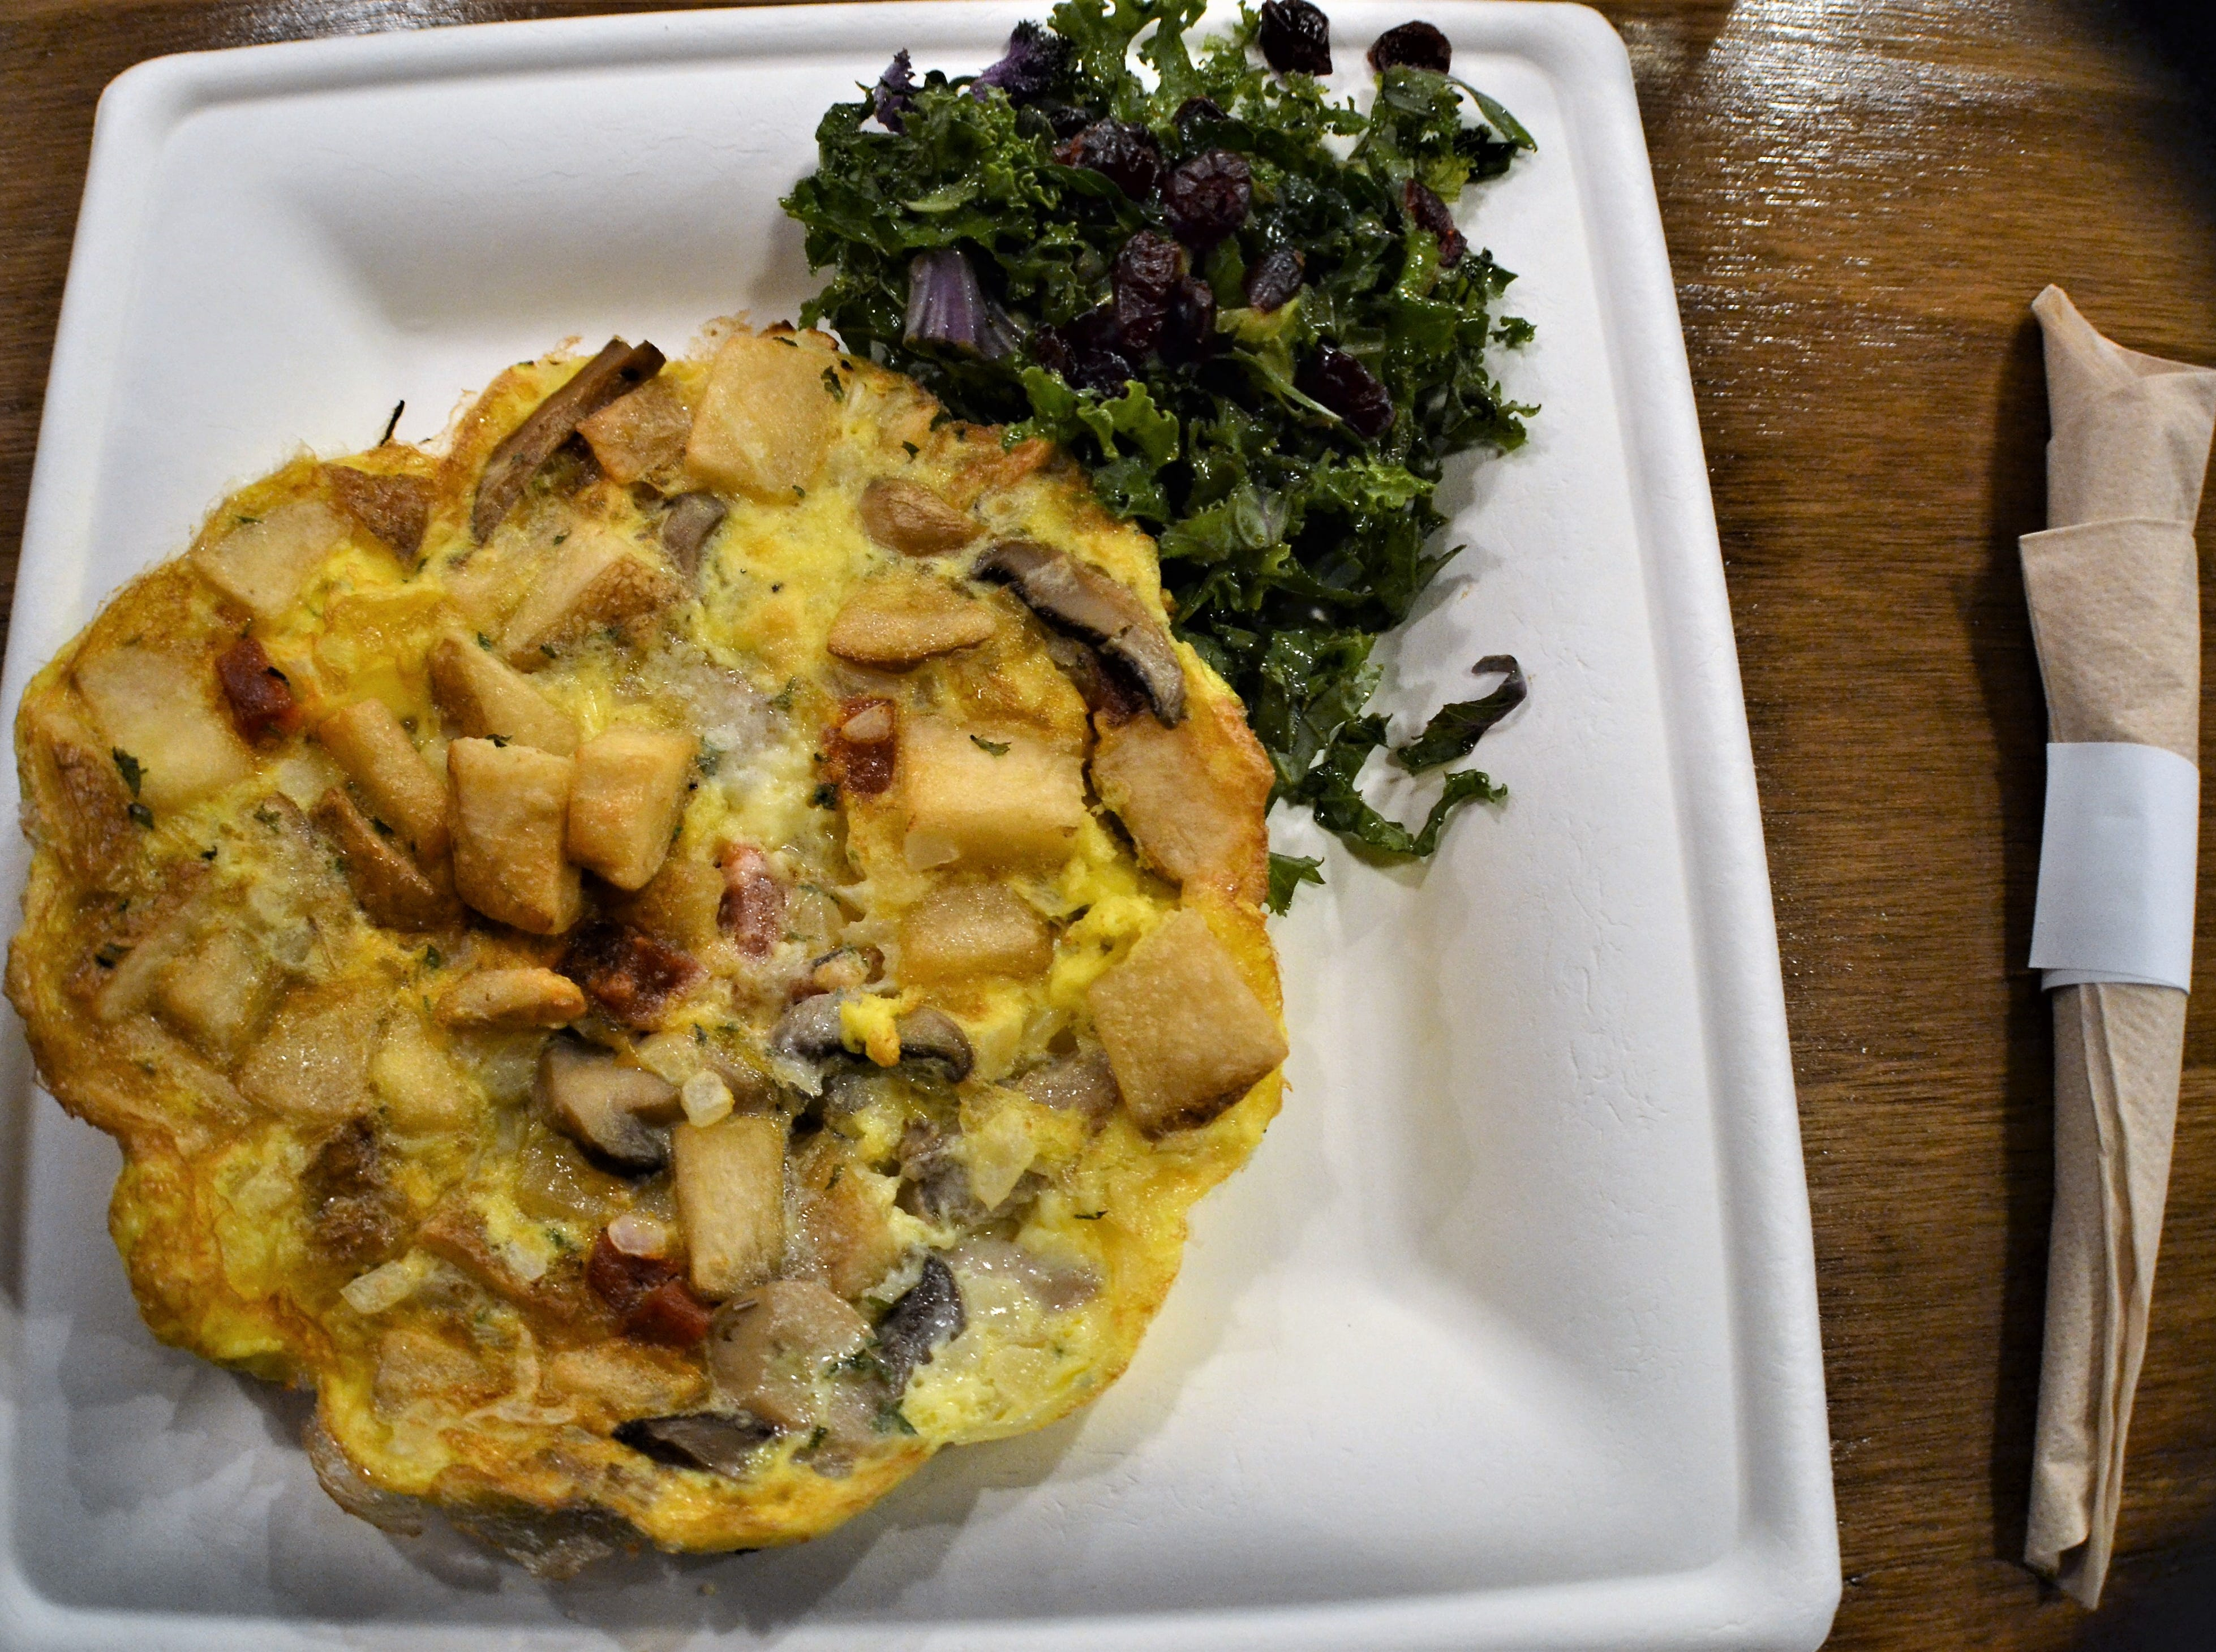 El sonador is one of three tortilla espanola omelettes available at El Charro Hipster.